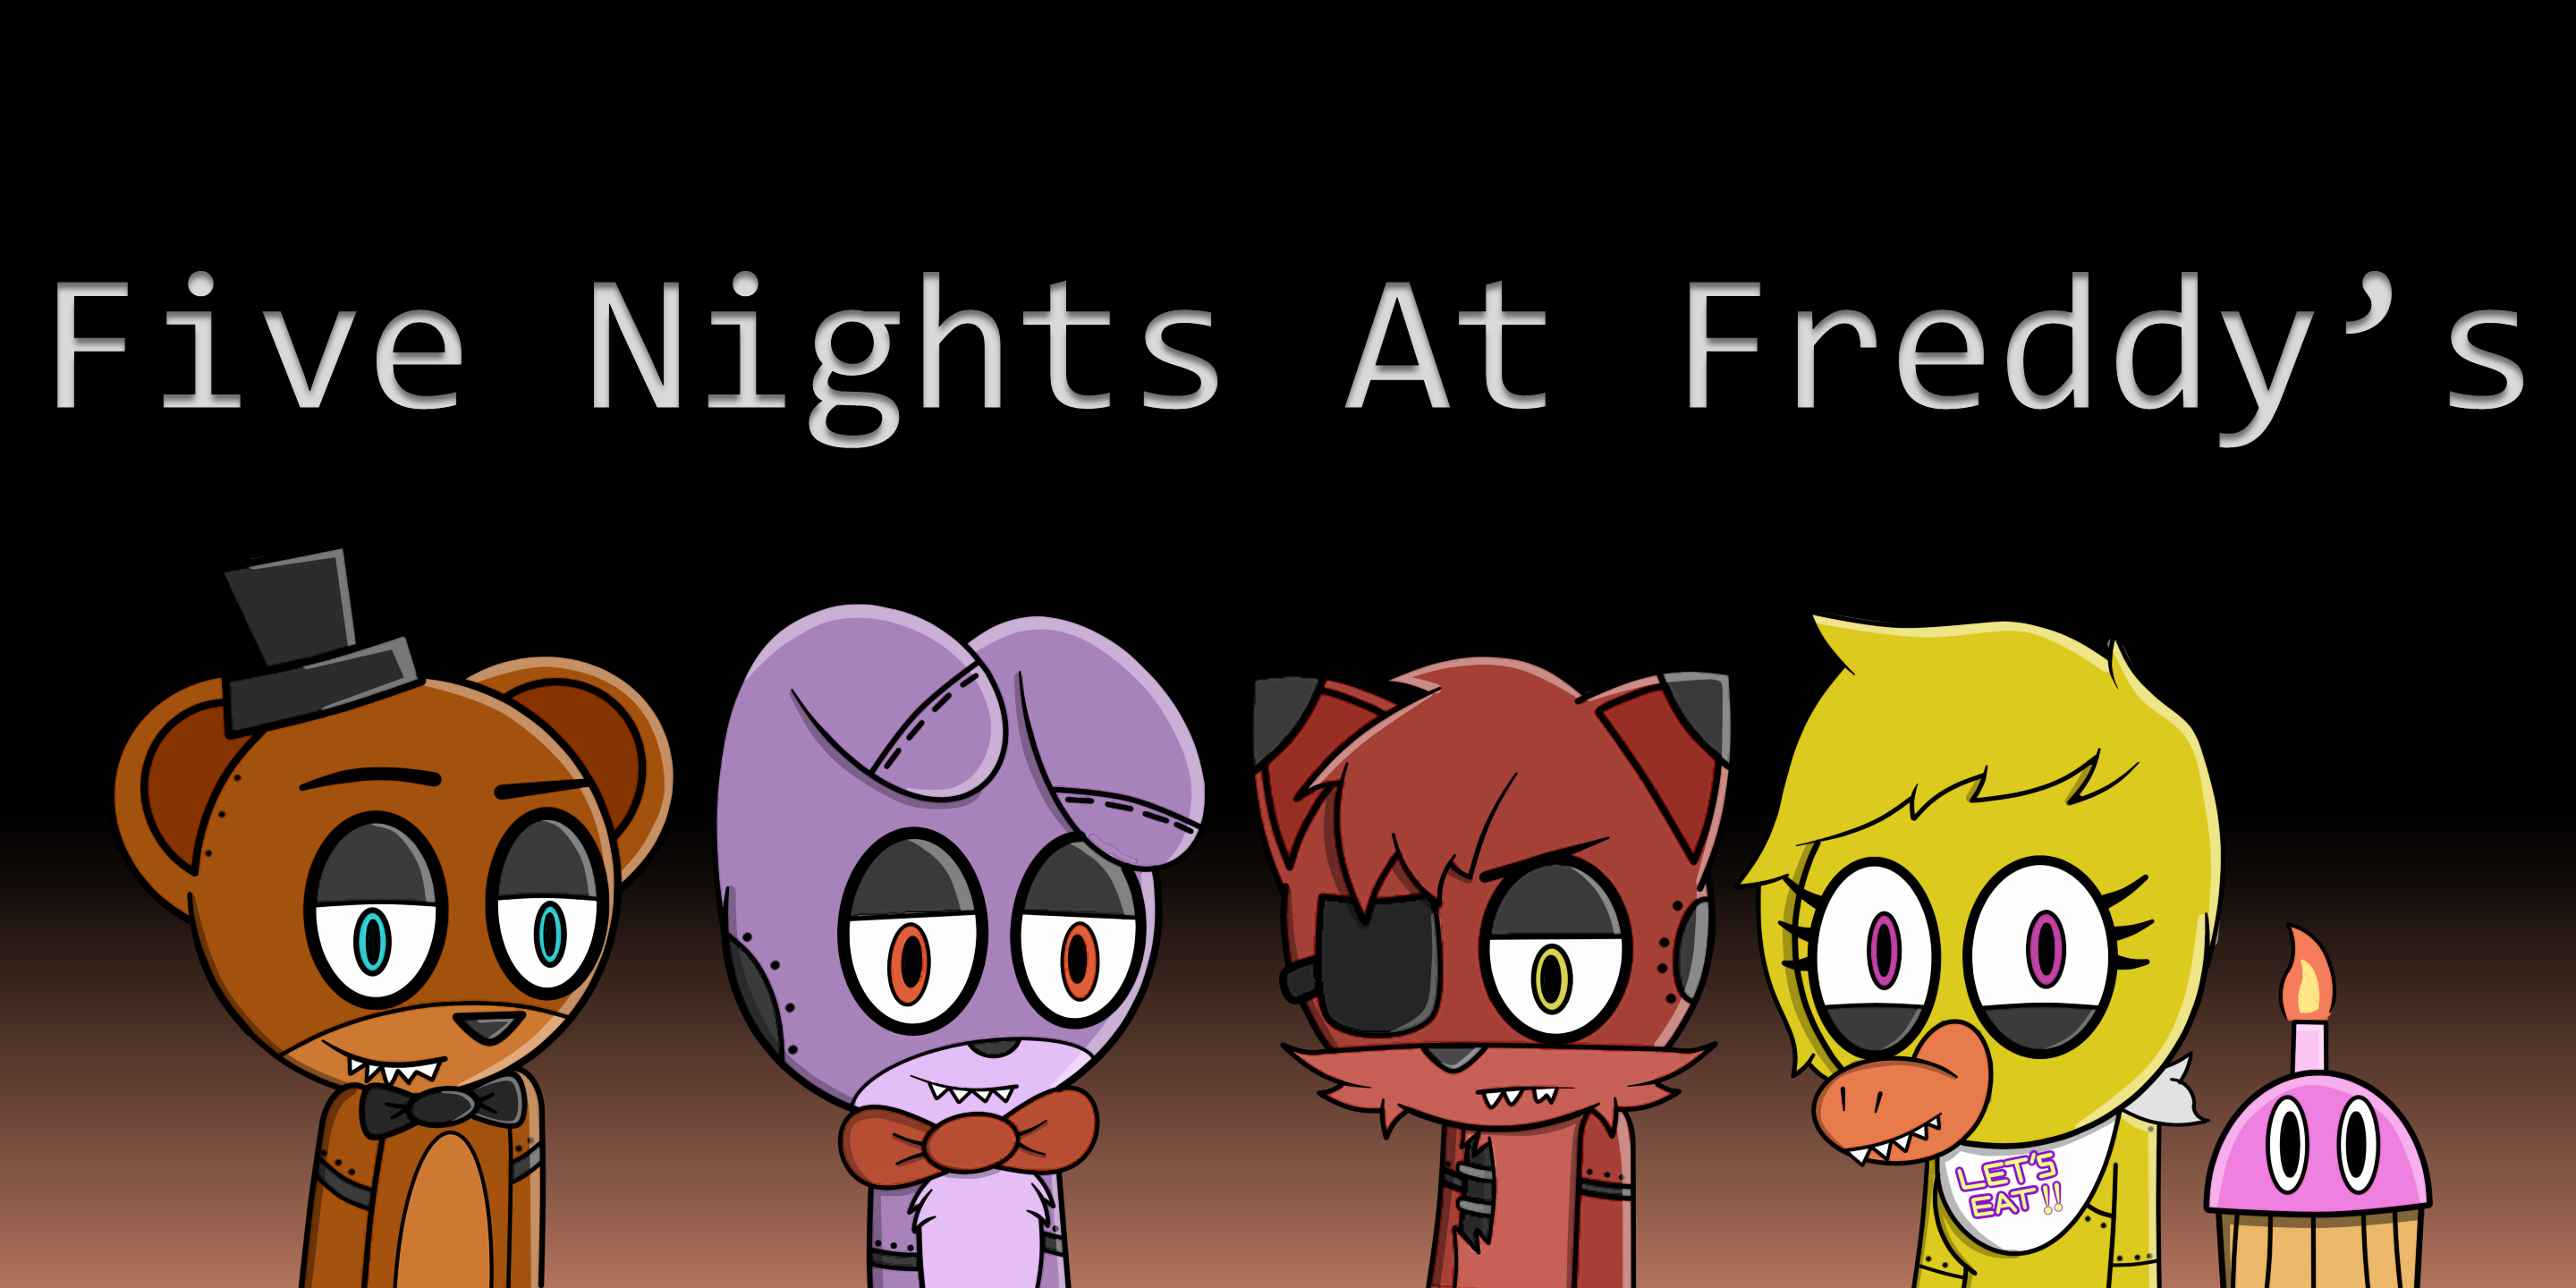 Fnaf By Miky116 On Newgrounds